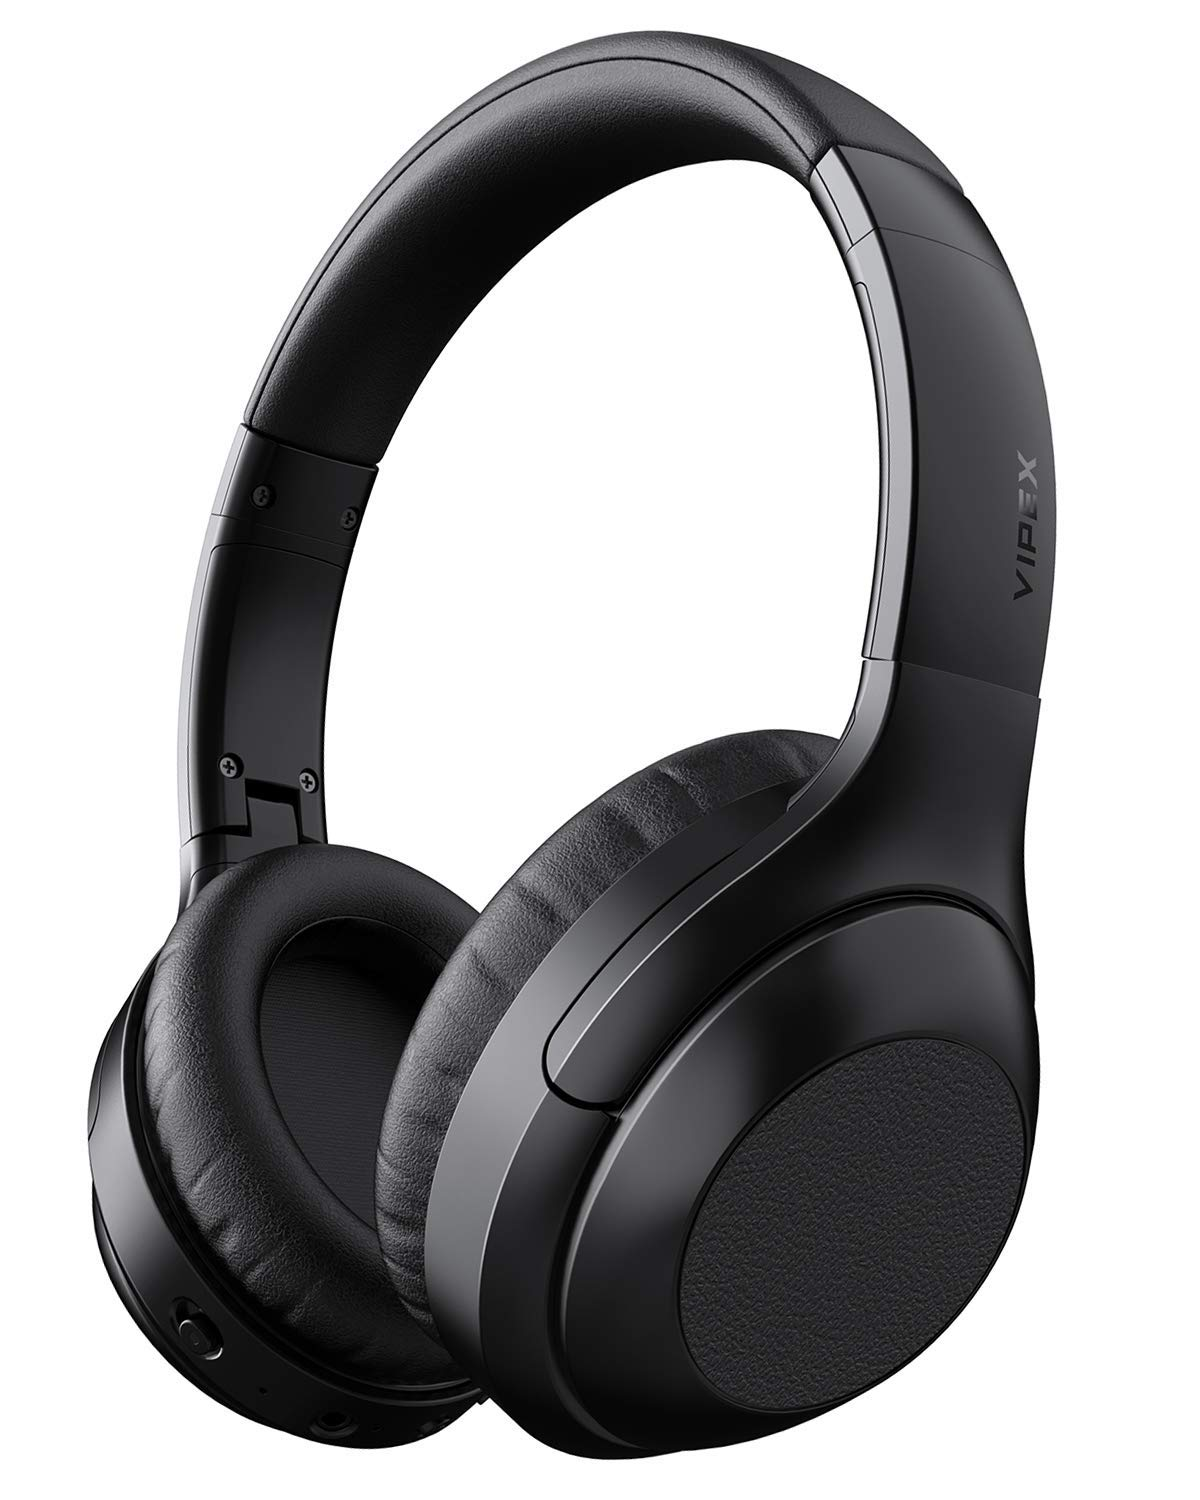 Active Noise Cancelling Headphones, VIPEX Bluetooth Headphones Wireless Headphone Over Ear with Microphone Hi-Fi Sound Deep Bass, Fast Charge, 30 Hours Playtime for Work Travel